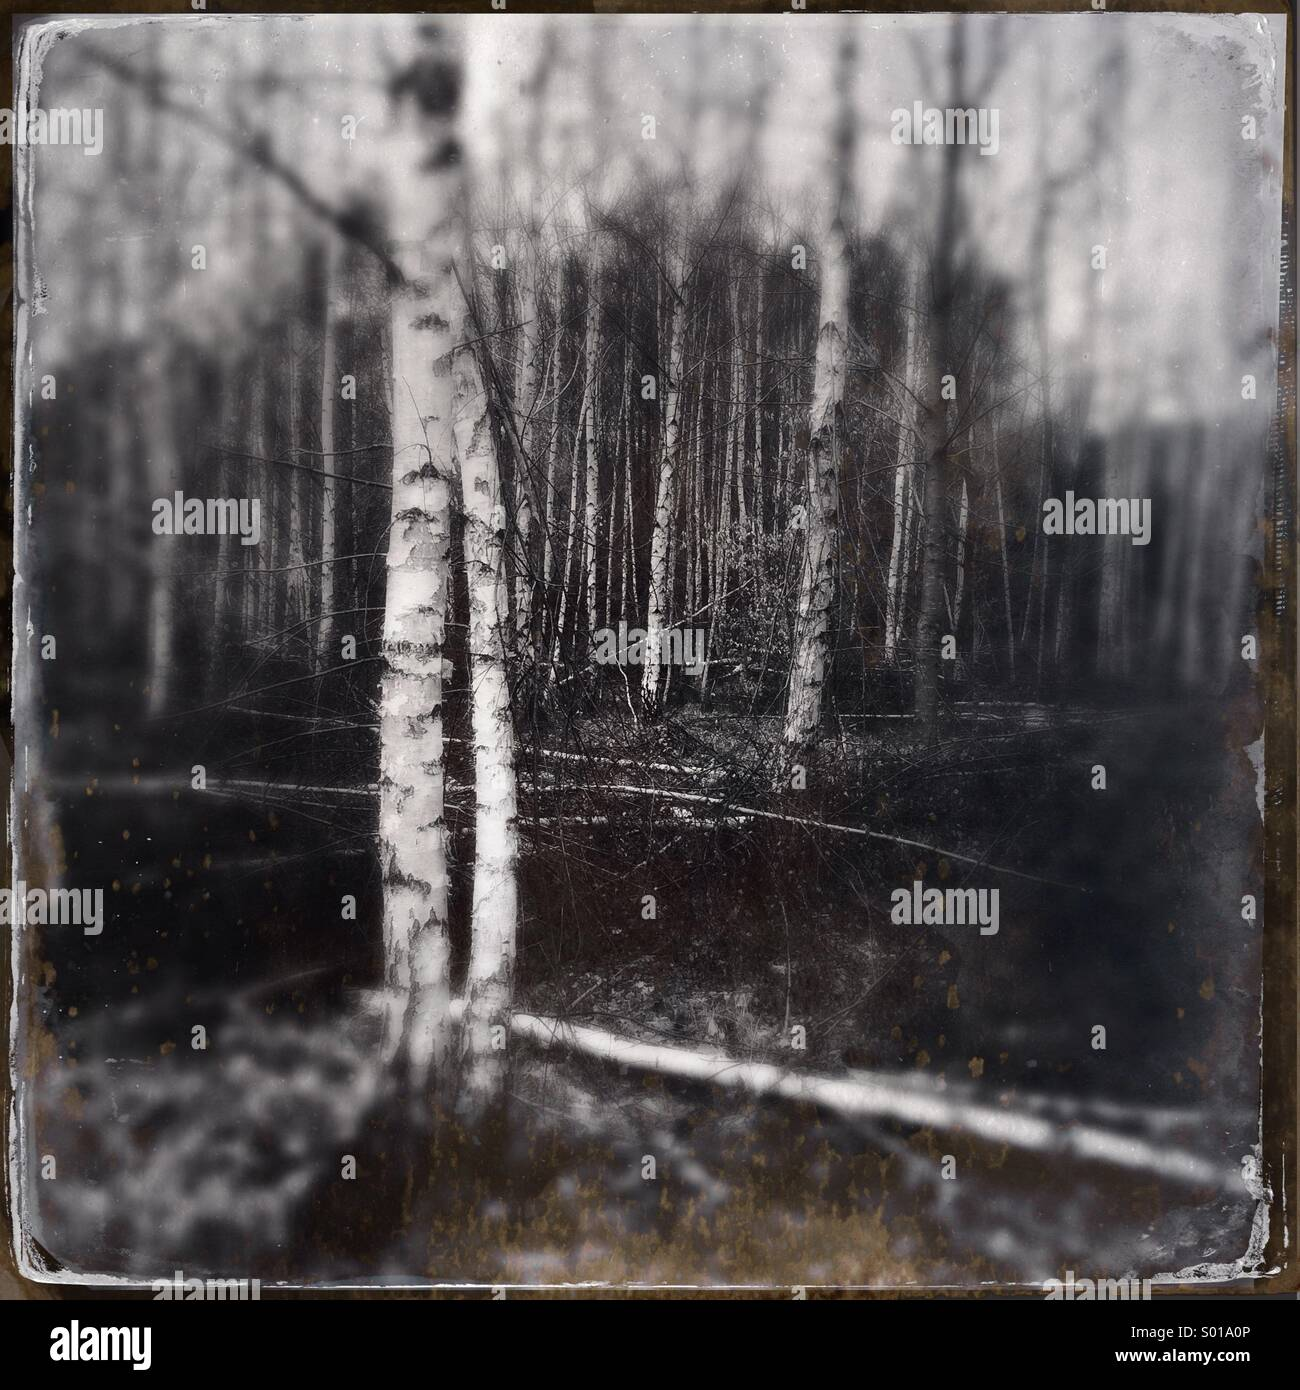 Birch trees in enchanted forest - Stock Image